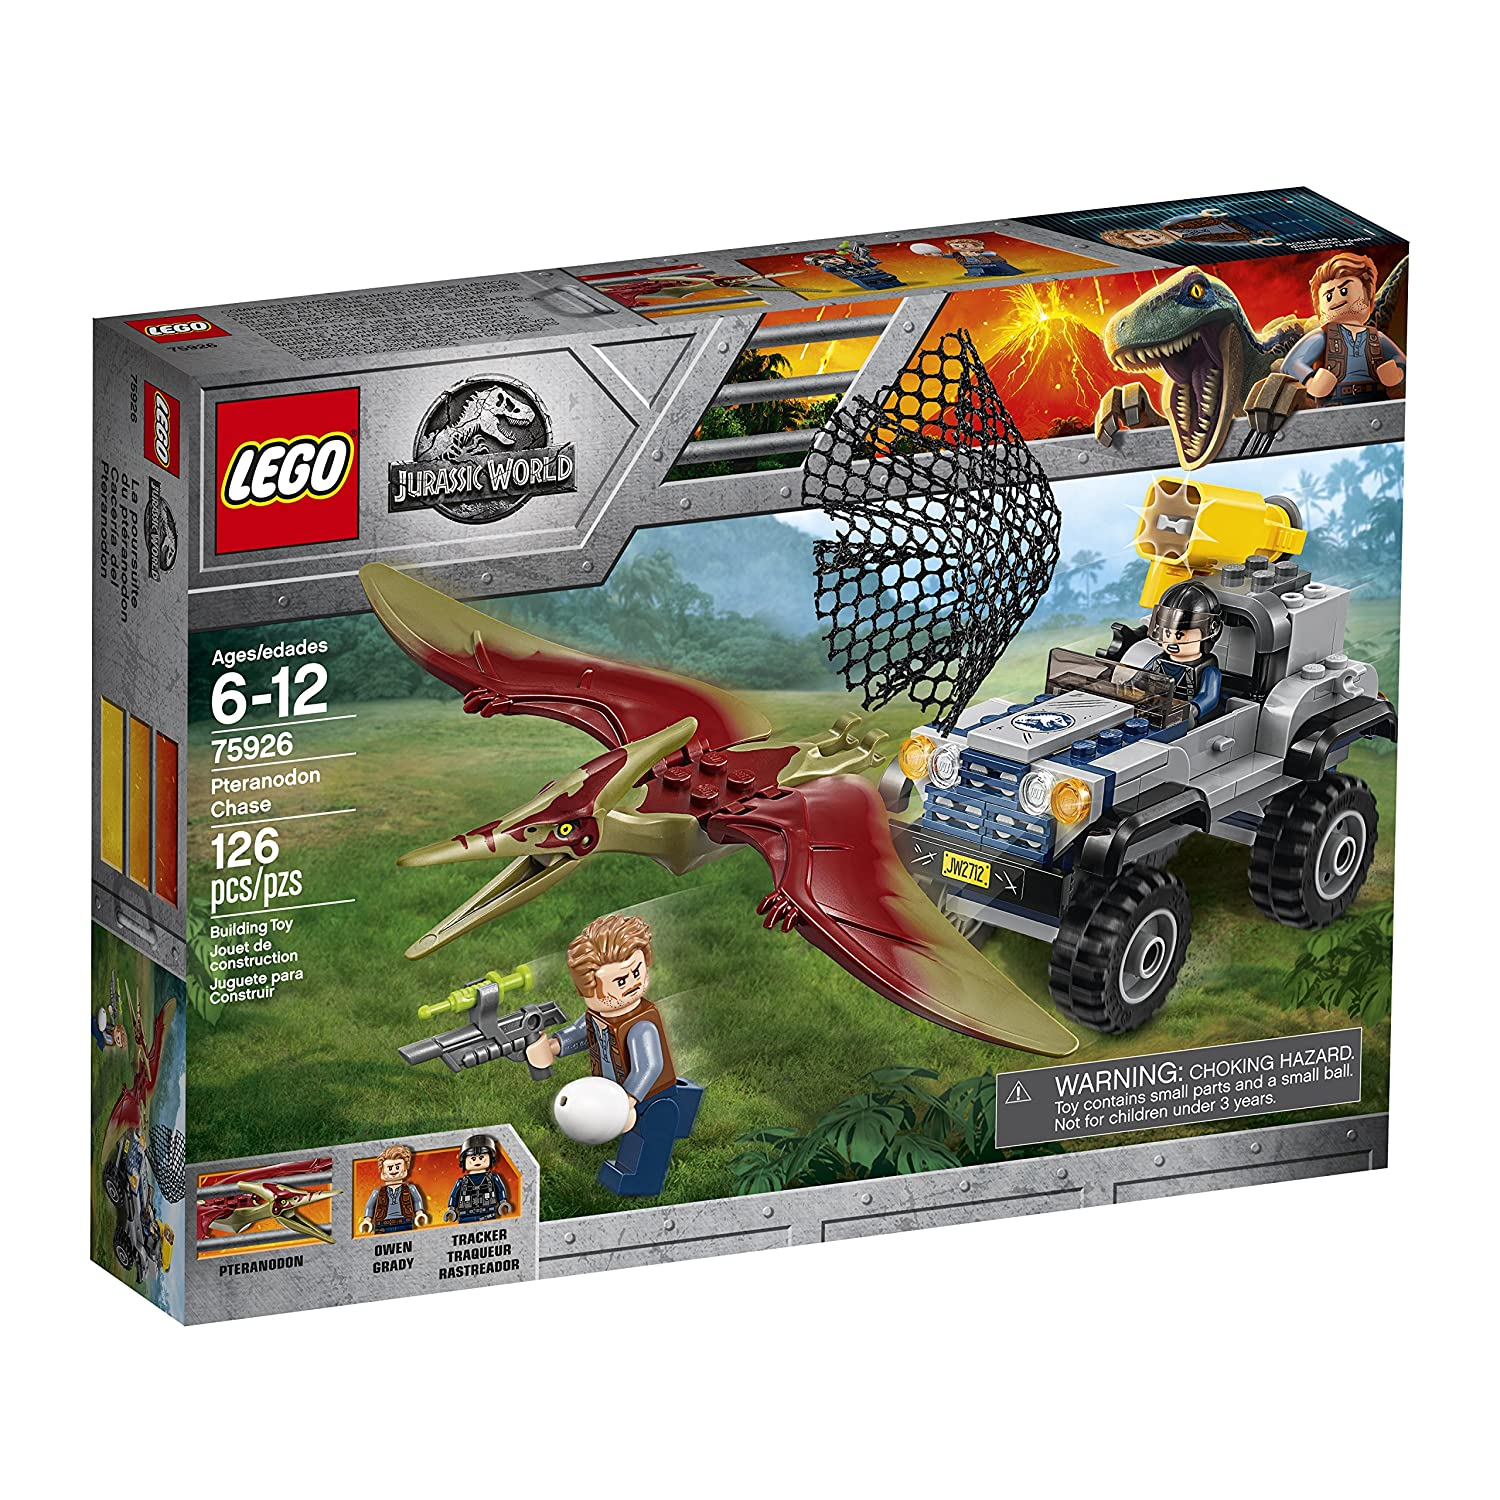 Top 9 Best Lego Jurassic Park Sets Reviews in 2020 5